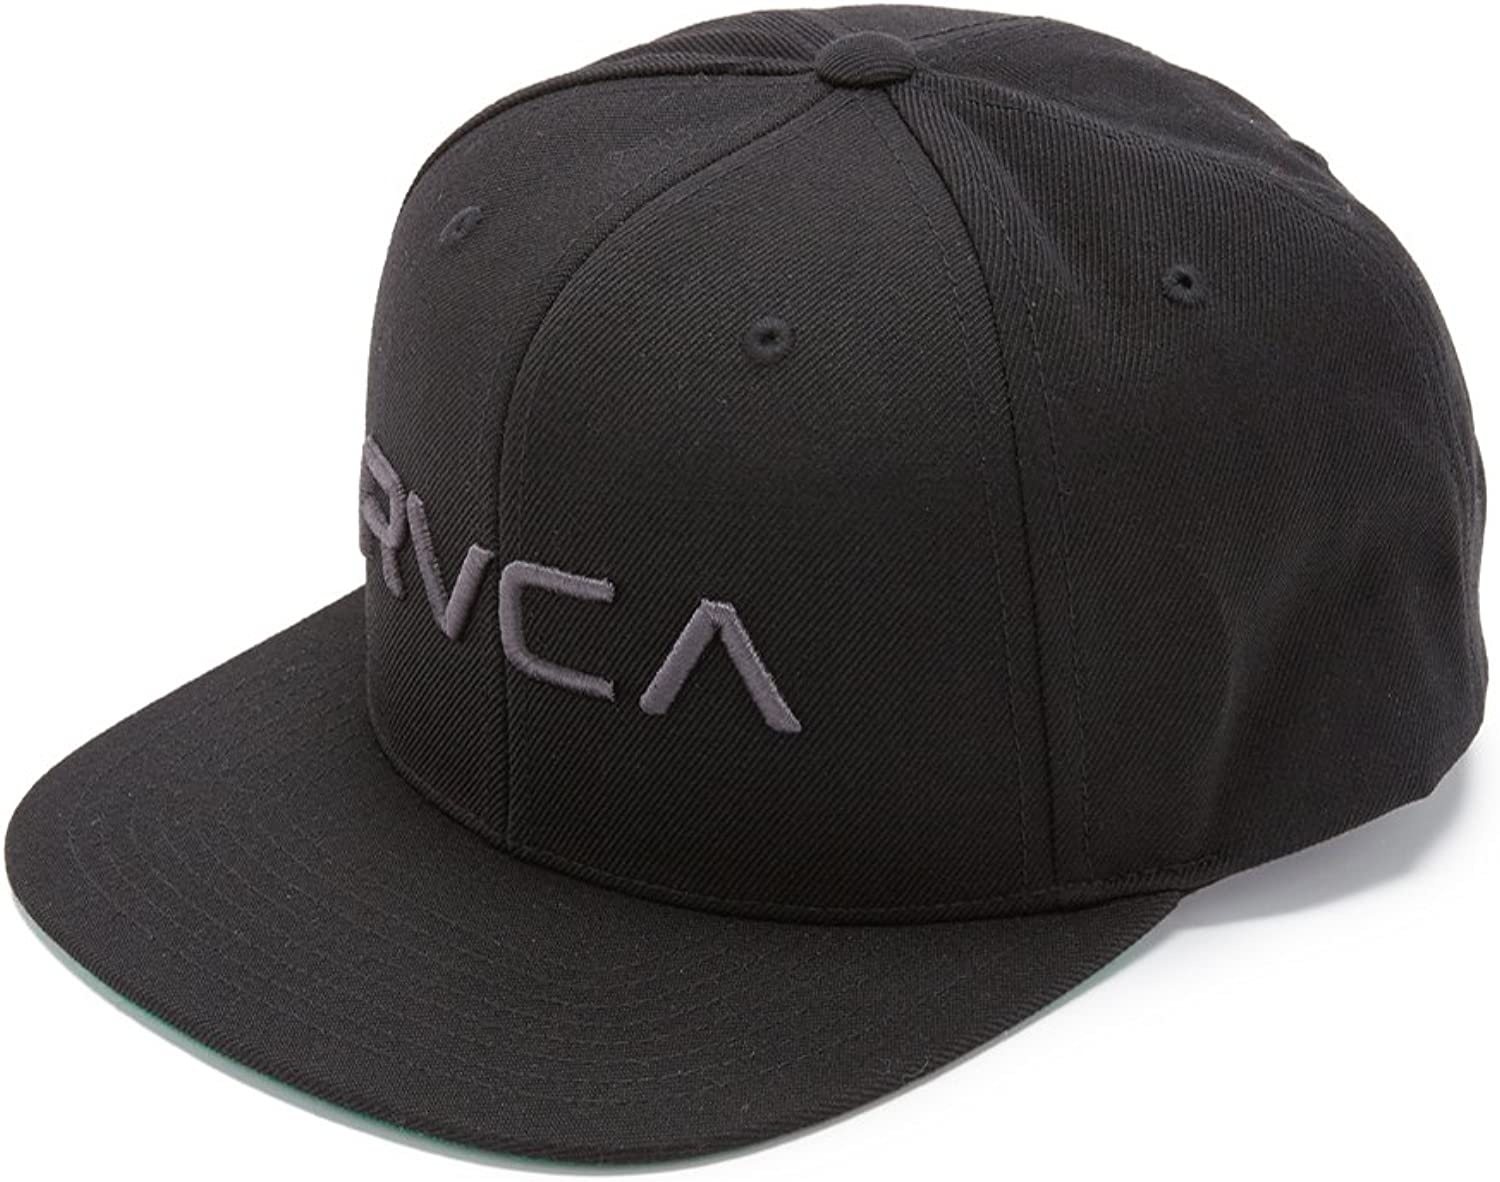 RVCA Rvca Twill Snapback Iii Hat Black 1SZ: Clothing